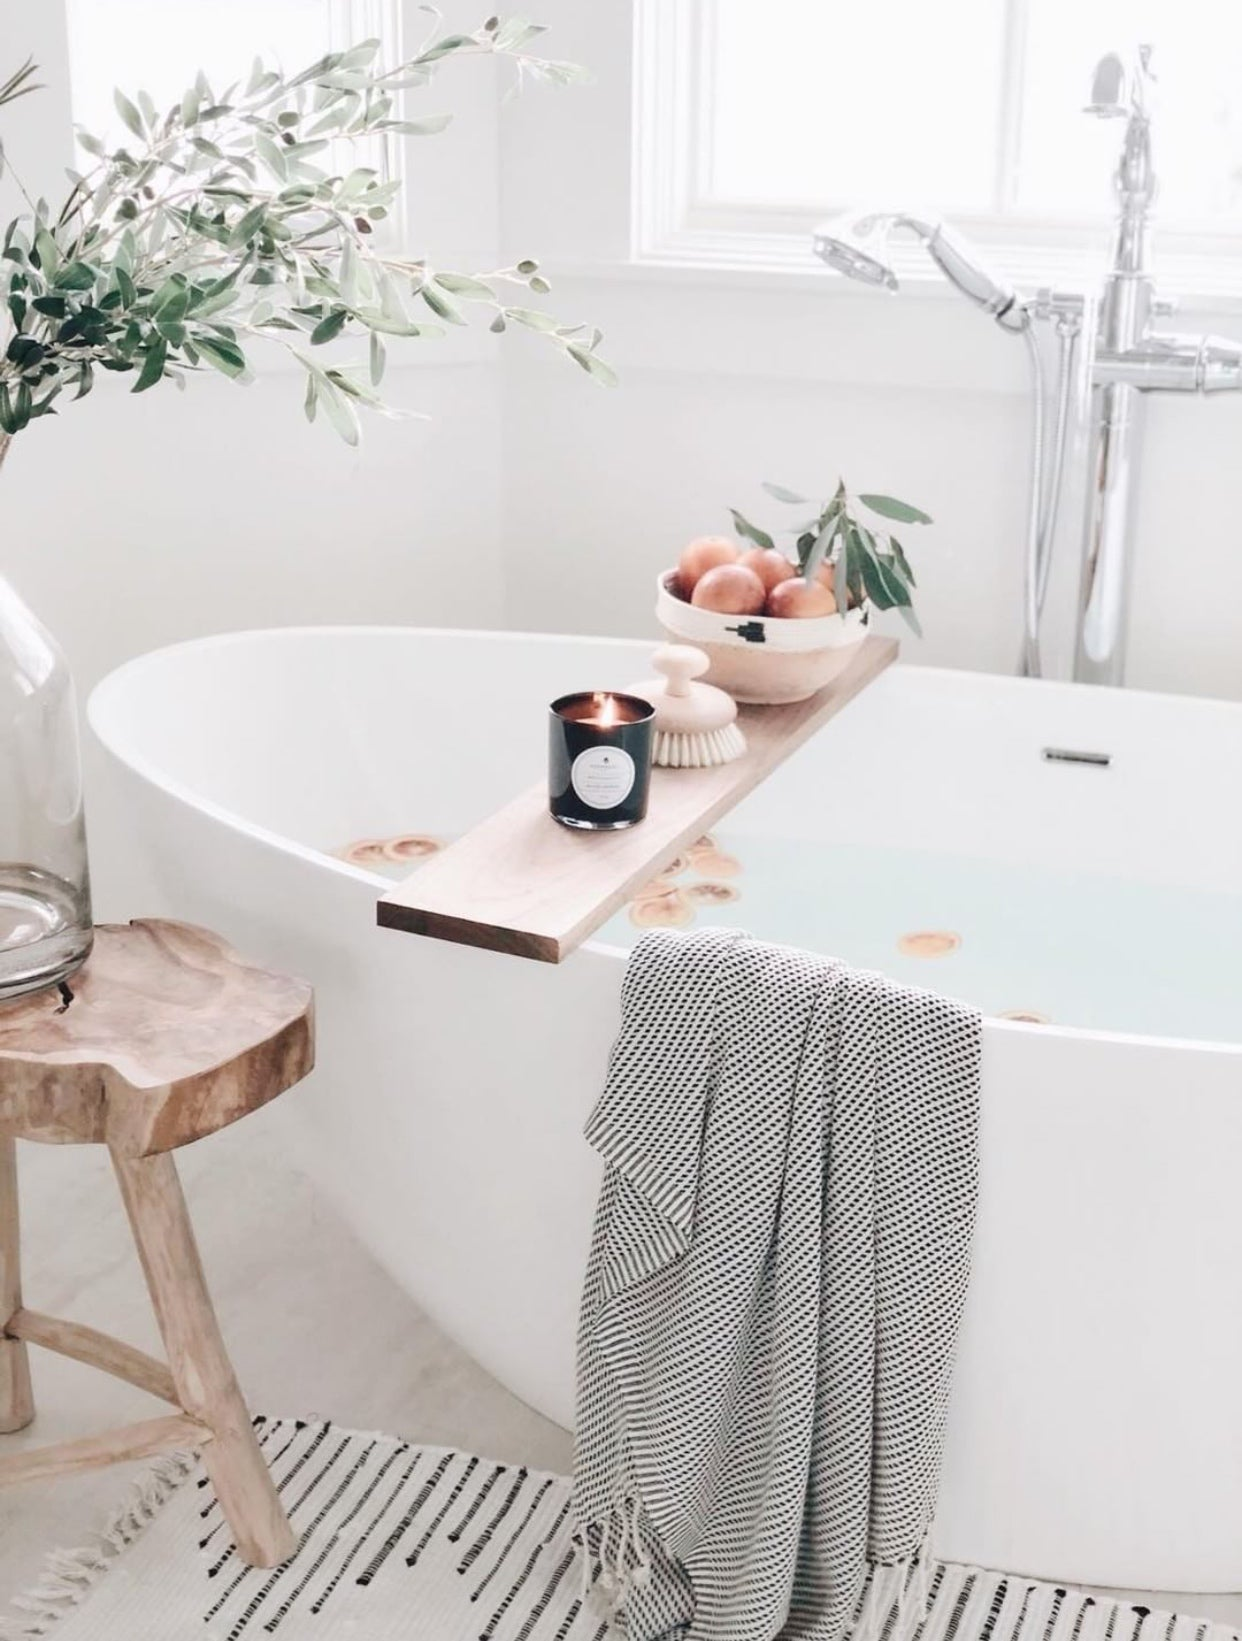 You Need These 3 Things for an Effective Self Care Ritual